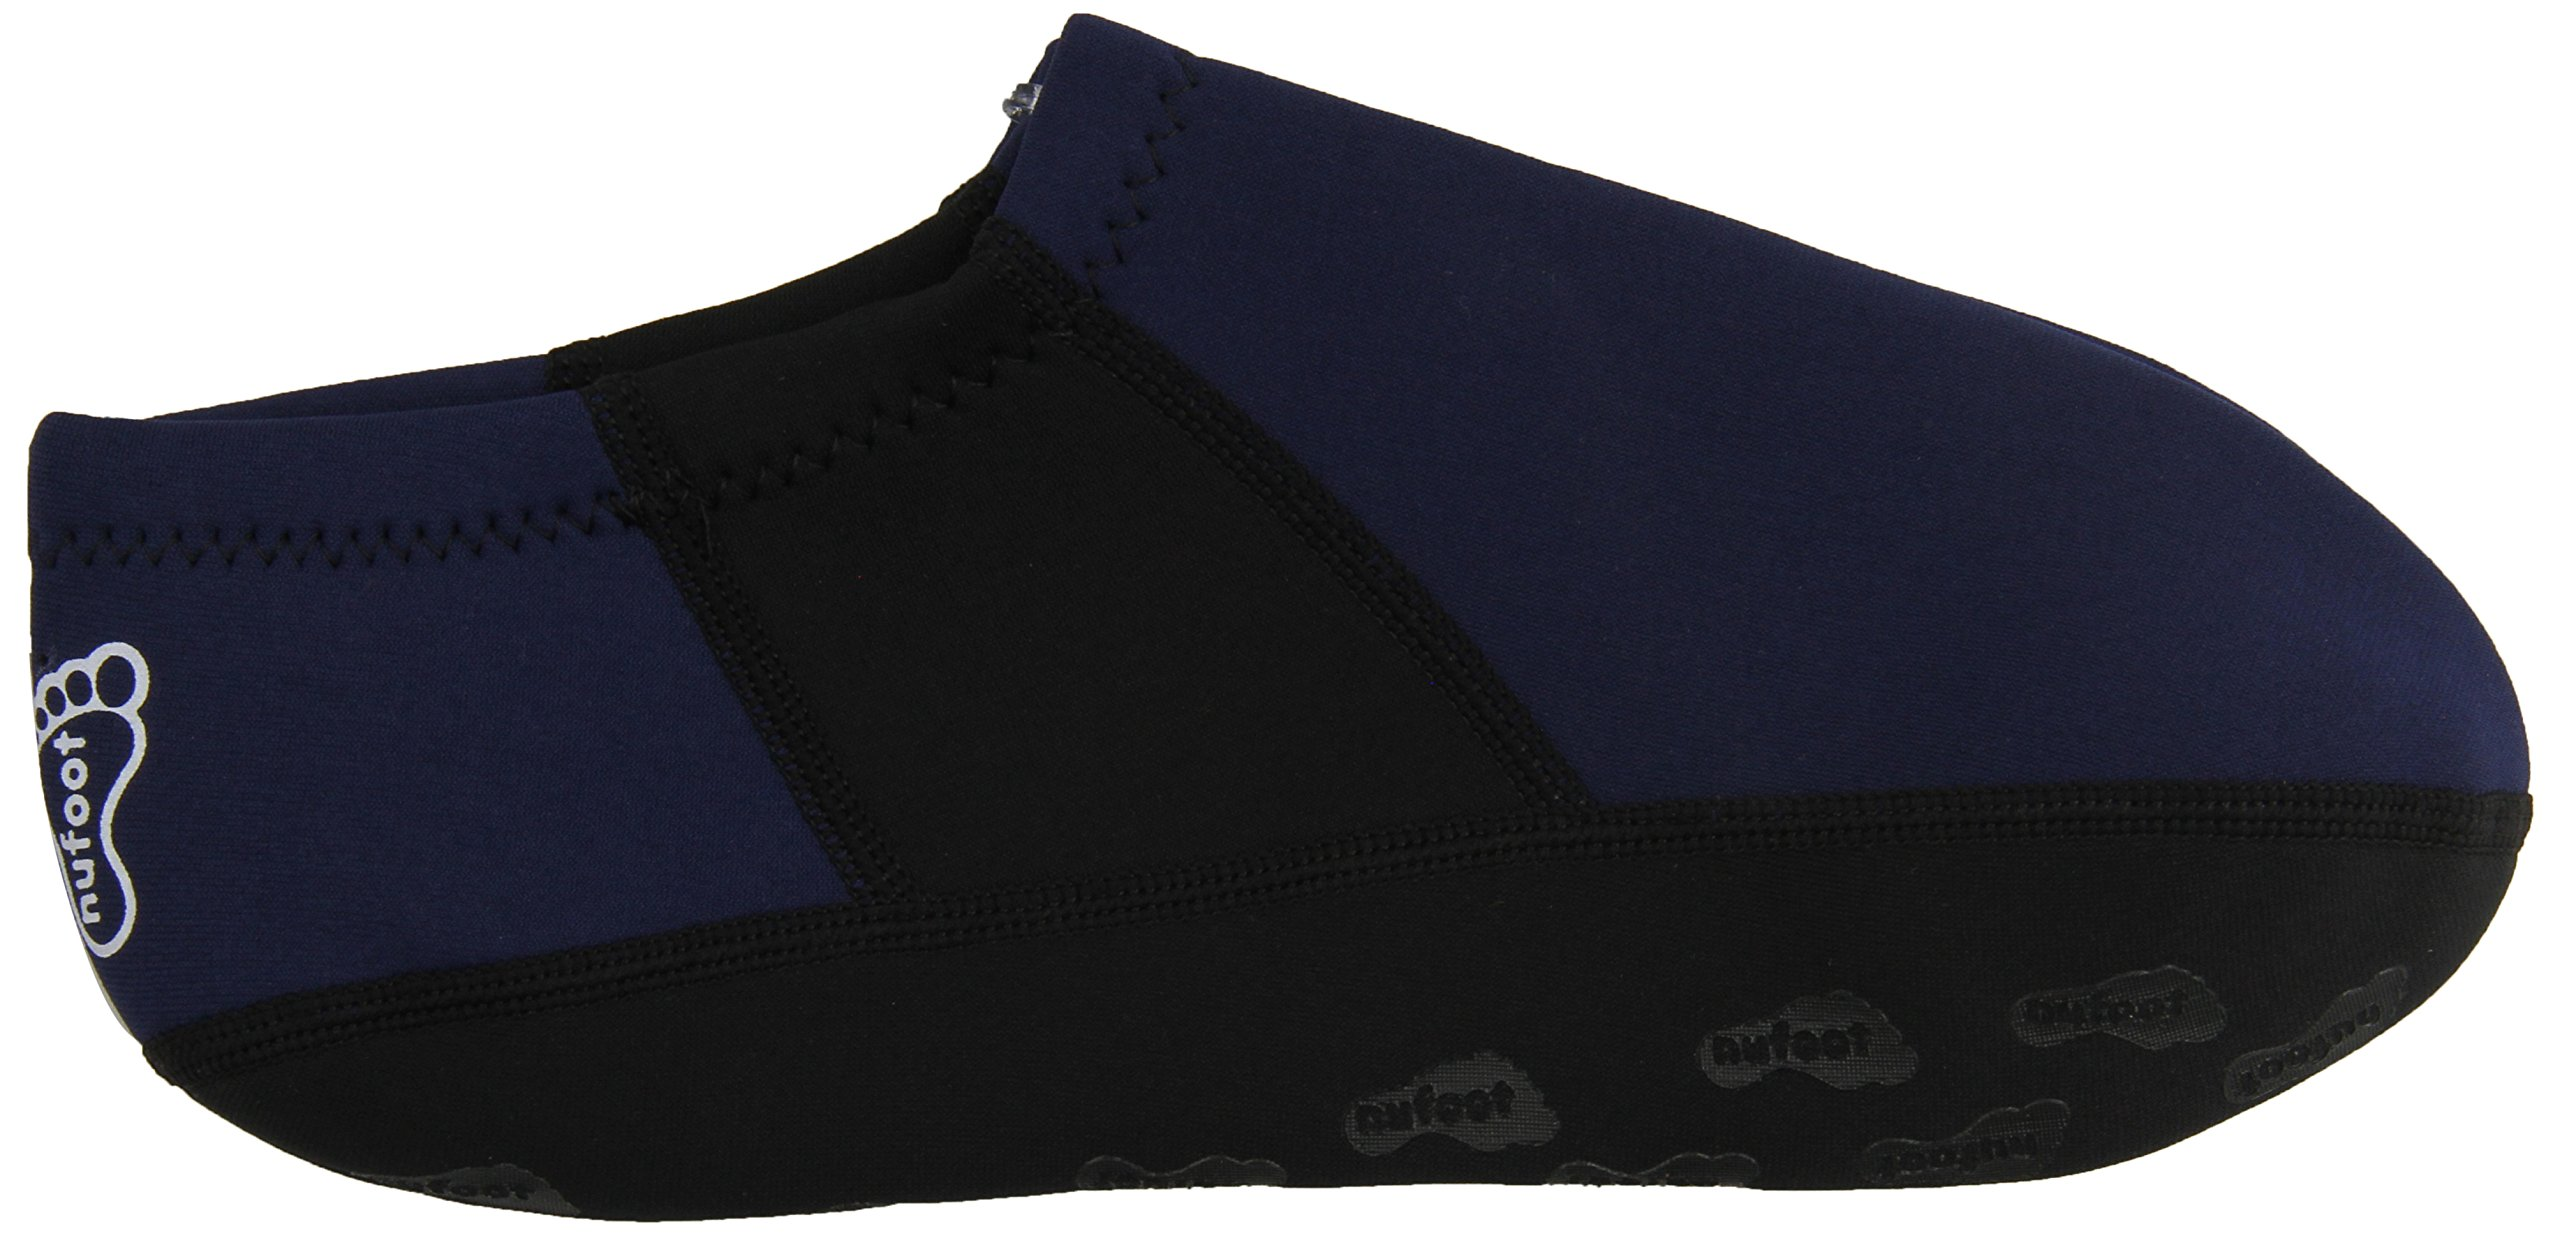 NuFoot Booties Men's Shoes, Best Foldable & Flexible Footwear, Fold and Go Travel Shoes, Yoga Socks, Indoor Shoes, Slippers, Navy Blue with Black Stripes, Extra Large